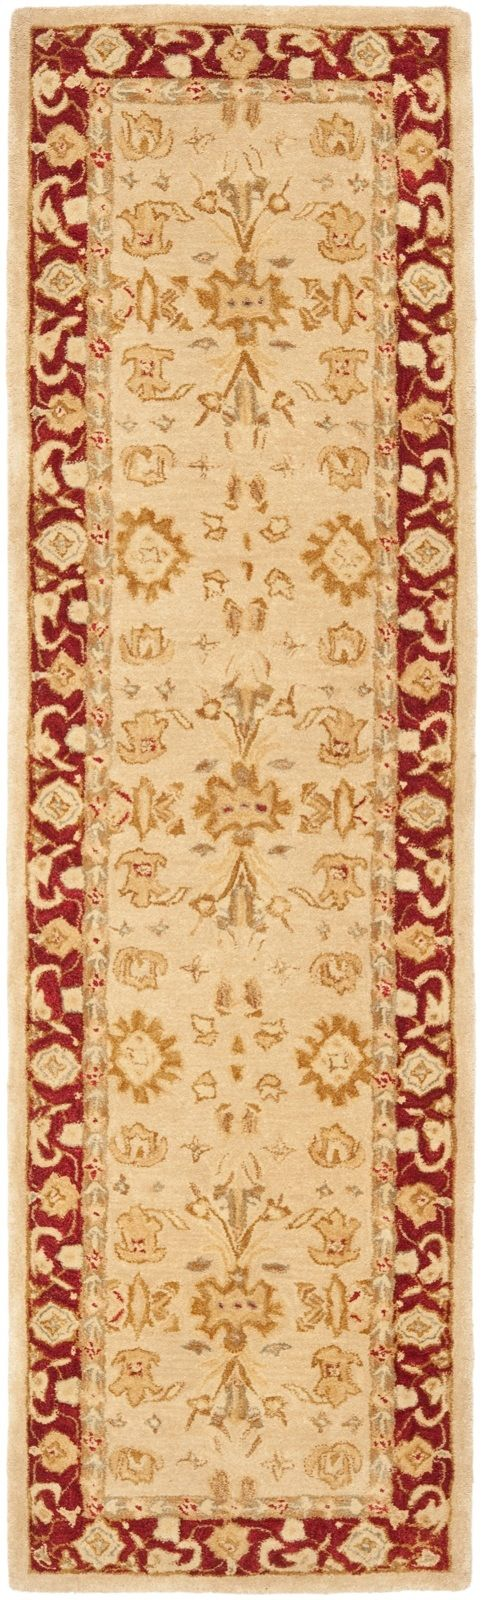 safavieh anatolia traditional area rug collection